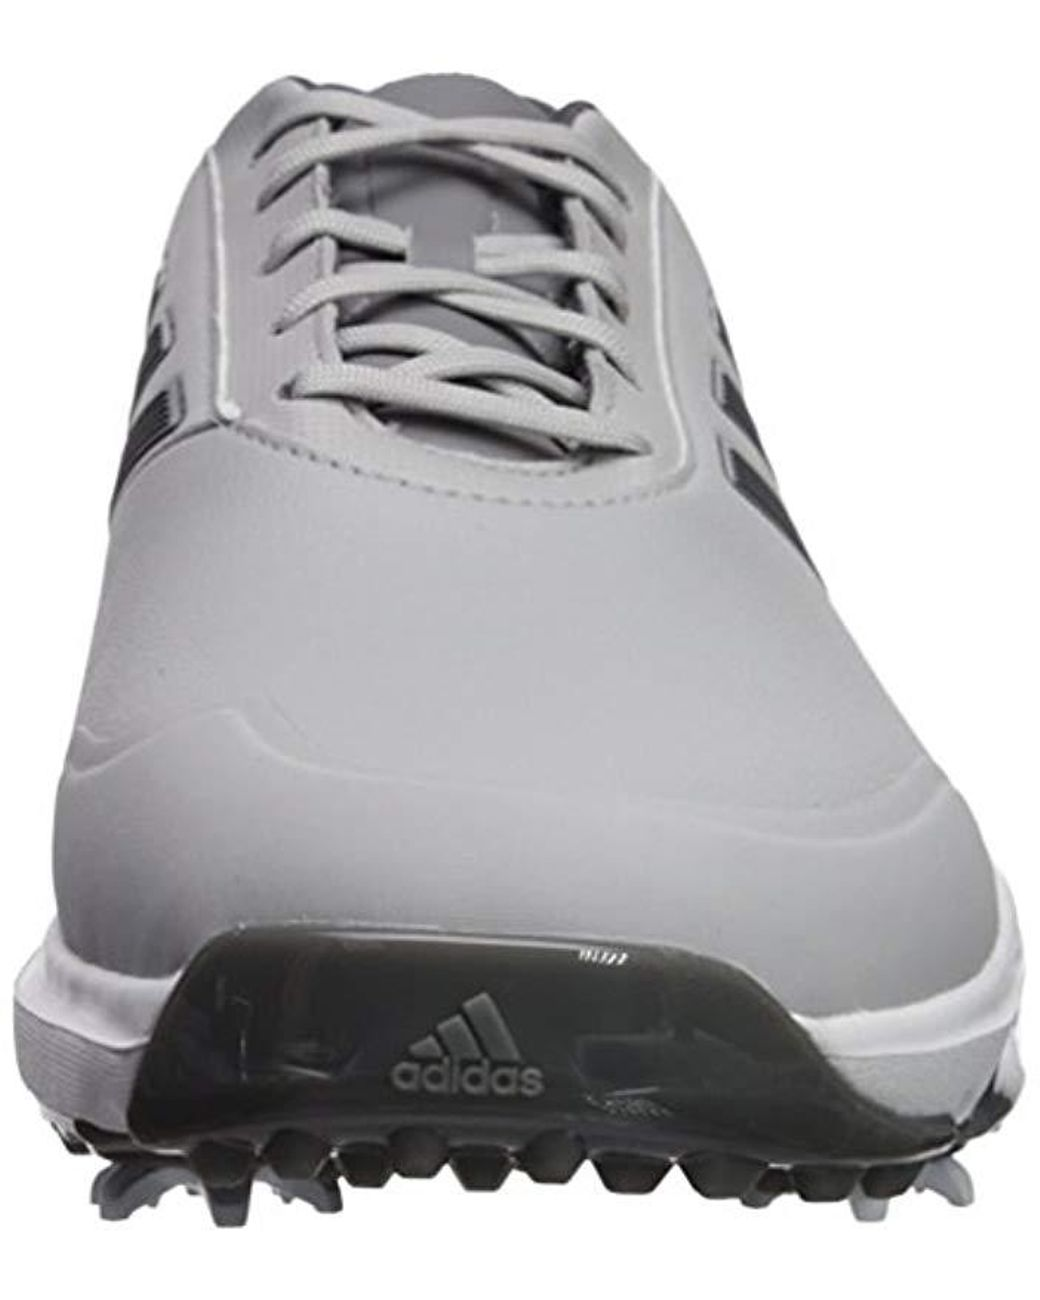 f1e245f9f3aad Lyst - adidas Adipower Bounce Wd Golf Shoe in Gray for Men - Save 22%